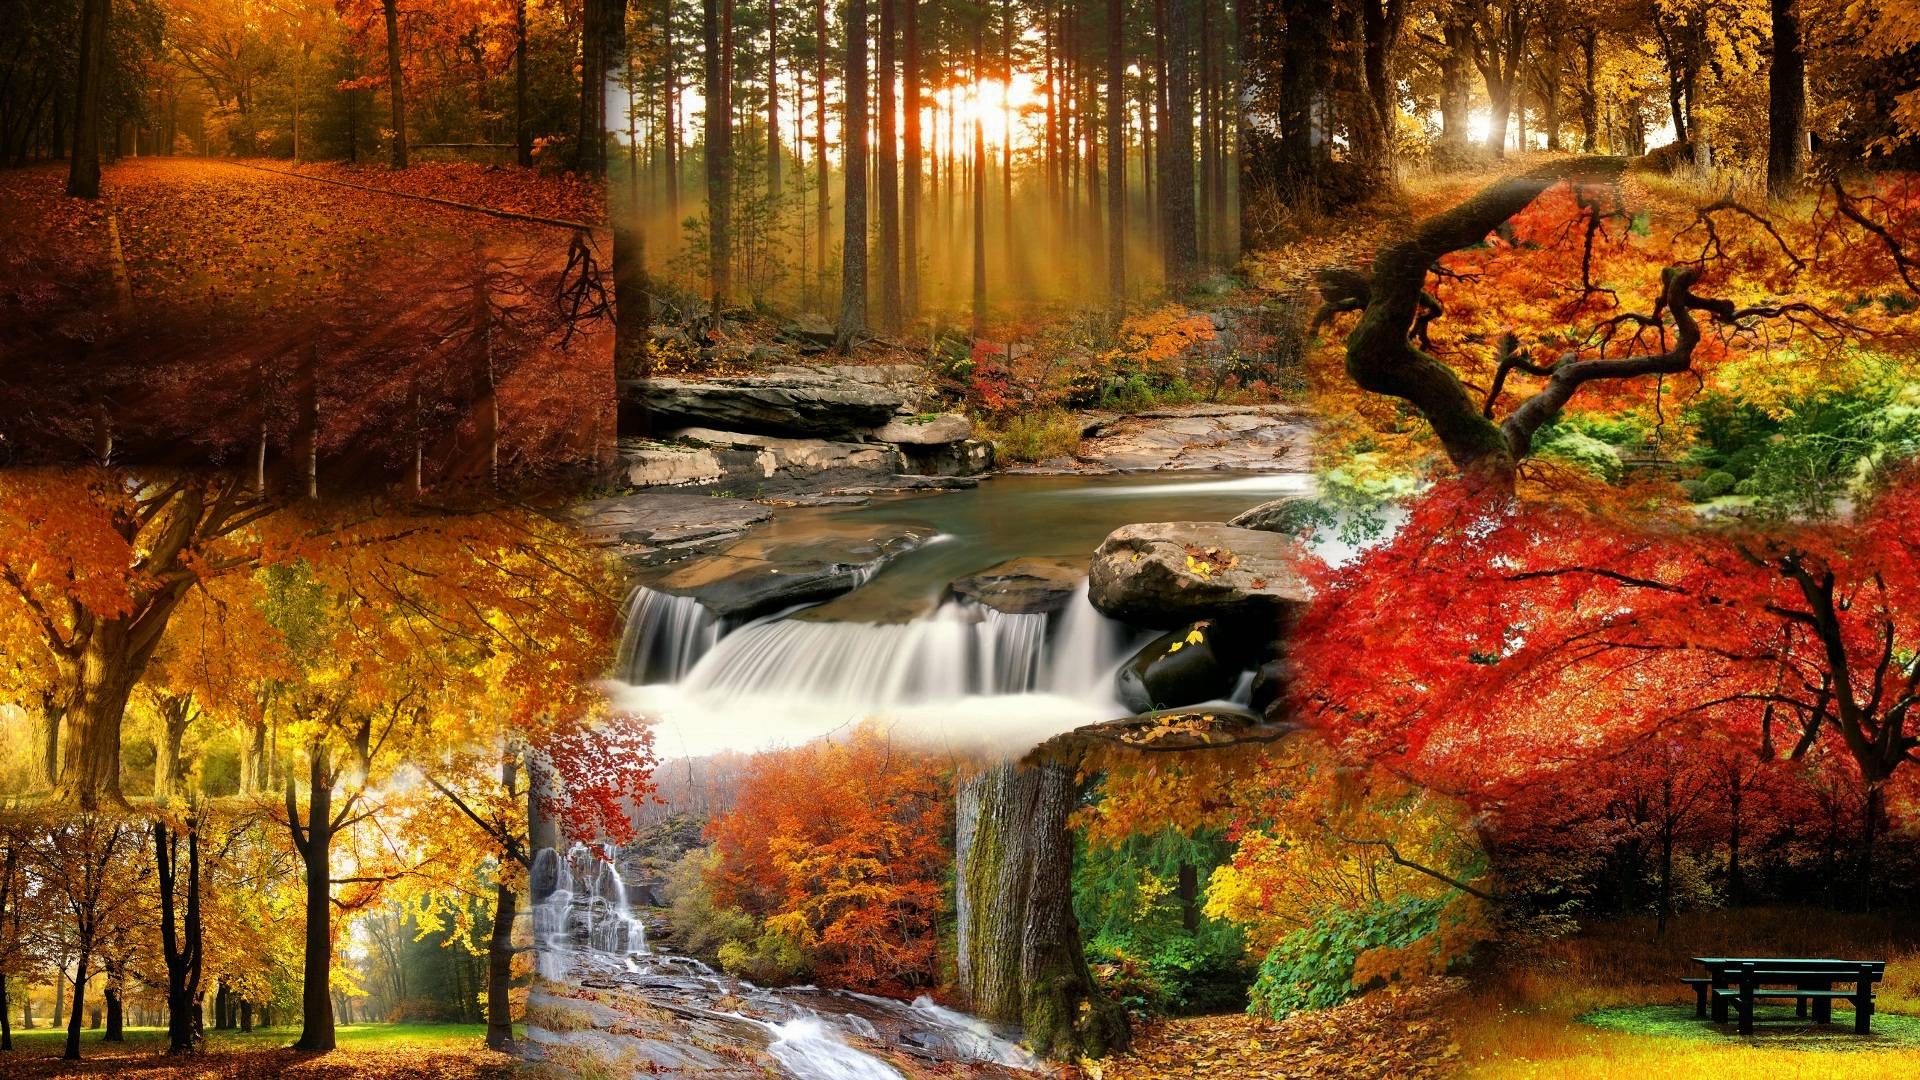 landscape autumn hd wallpaper - photo #32